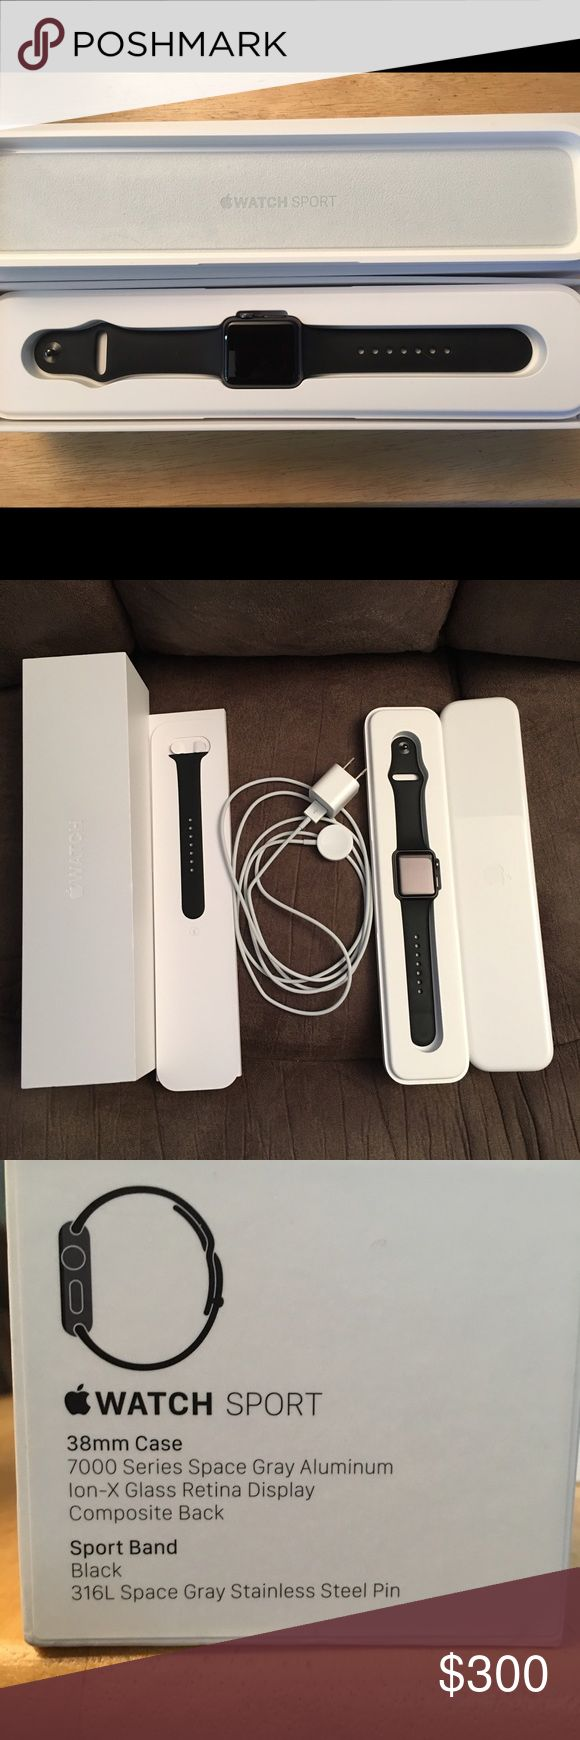 Apple Watch Sport Black 38mm EUC EUC Apple Watch Sport Black 38mm, 7000 series space gray aluminum, Ion-X Glass Retina display, composite back, Sport band, 316L space gray stainless steel pin, used for 3 days, I decided I really don't like watches. Apple Accessories Watches